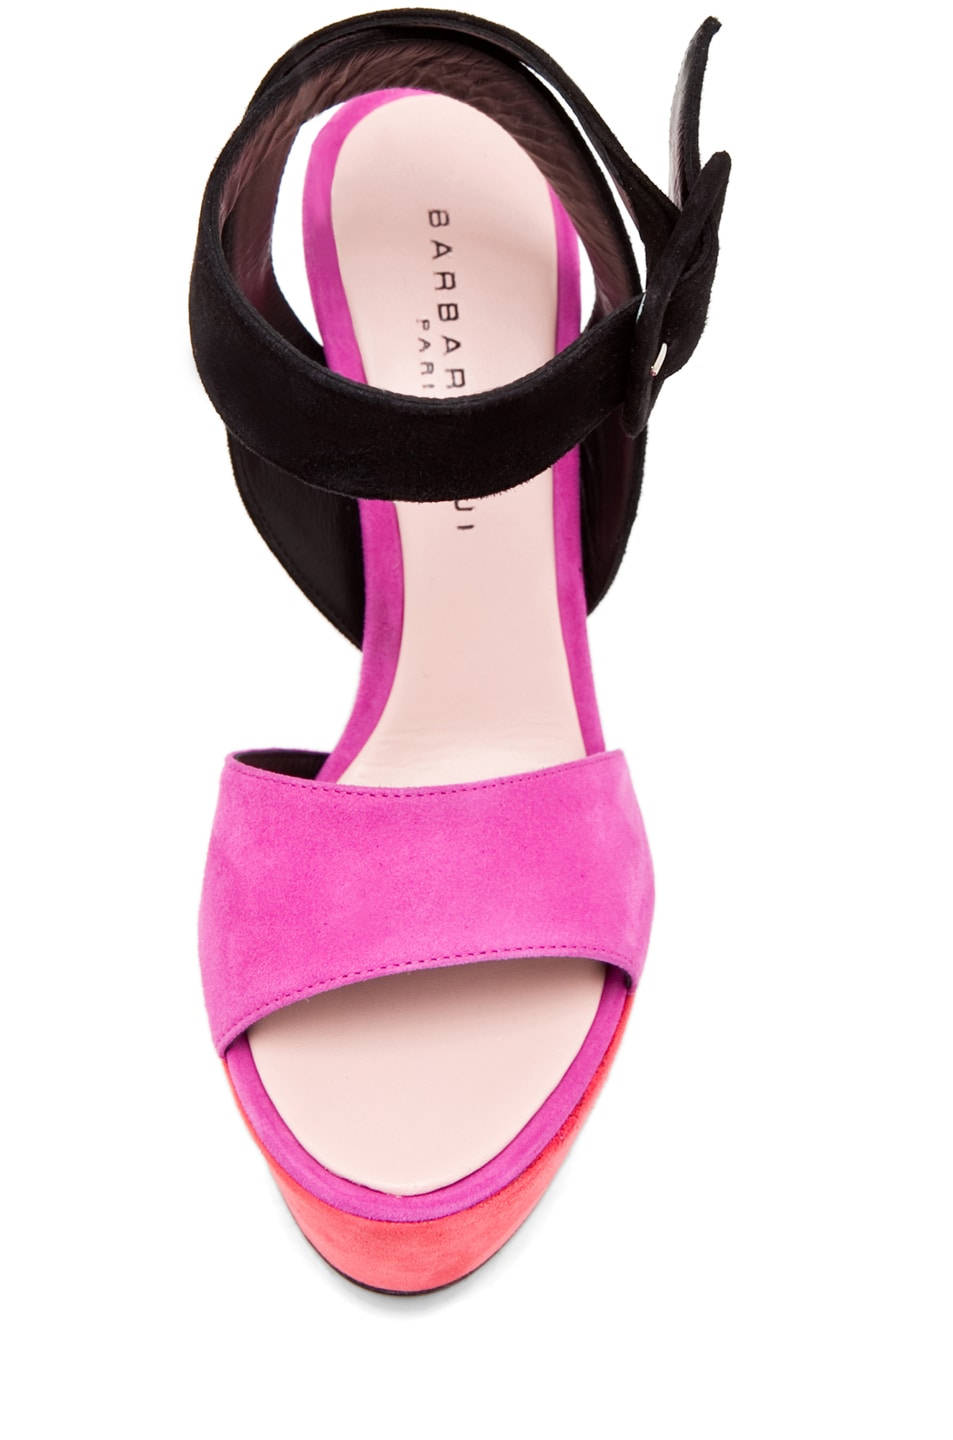 Image 4 of Barbara Bui Ankle Strap Heel in Pink/Black